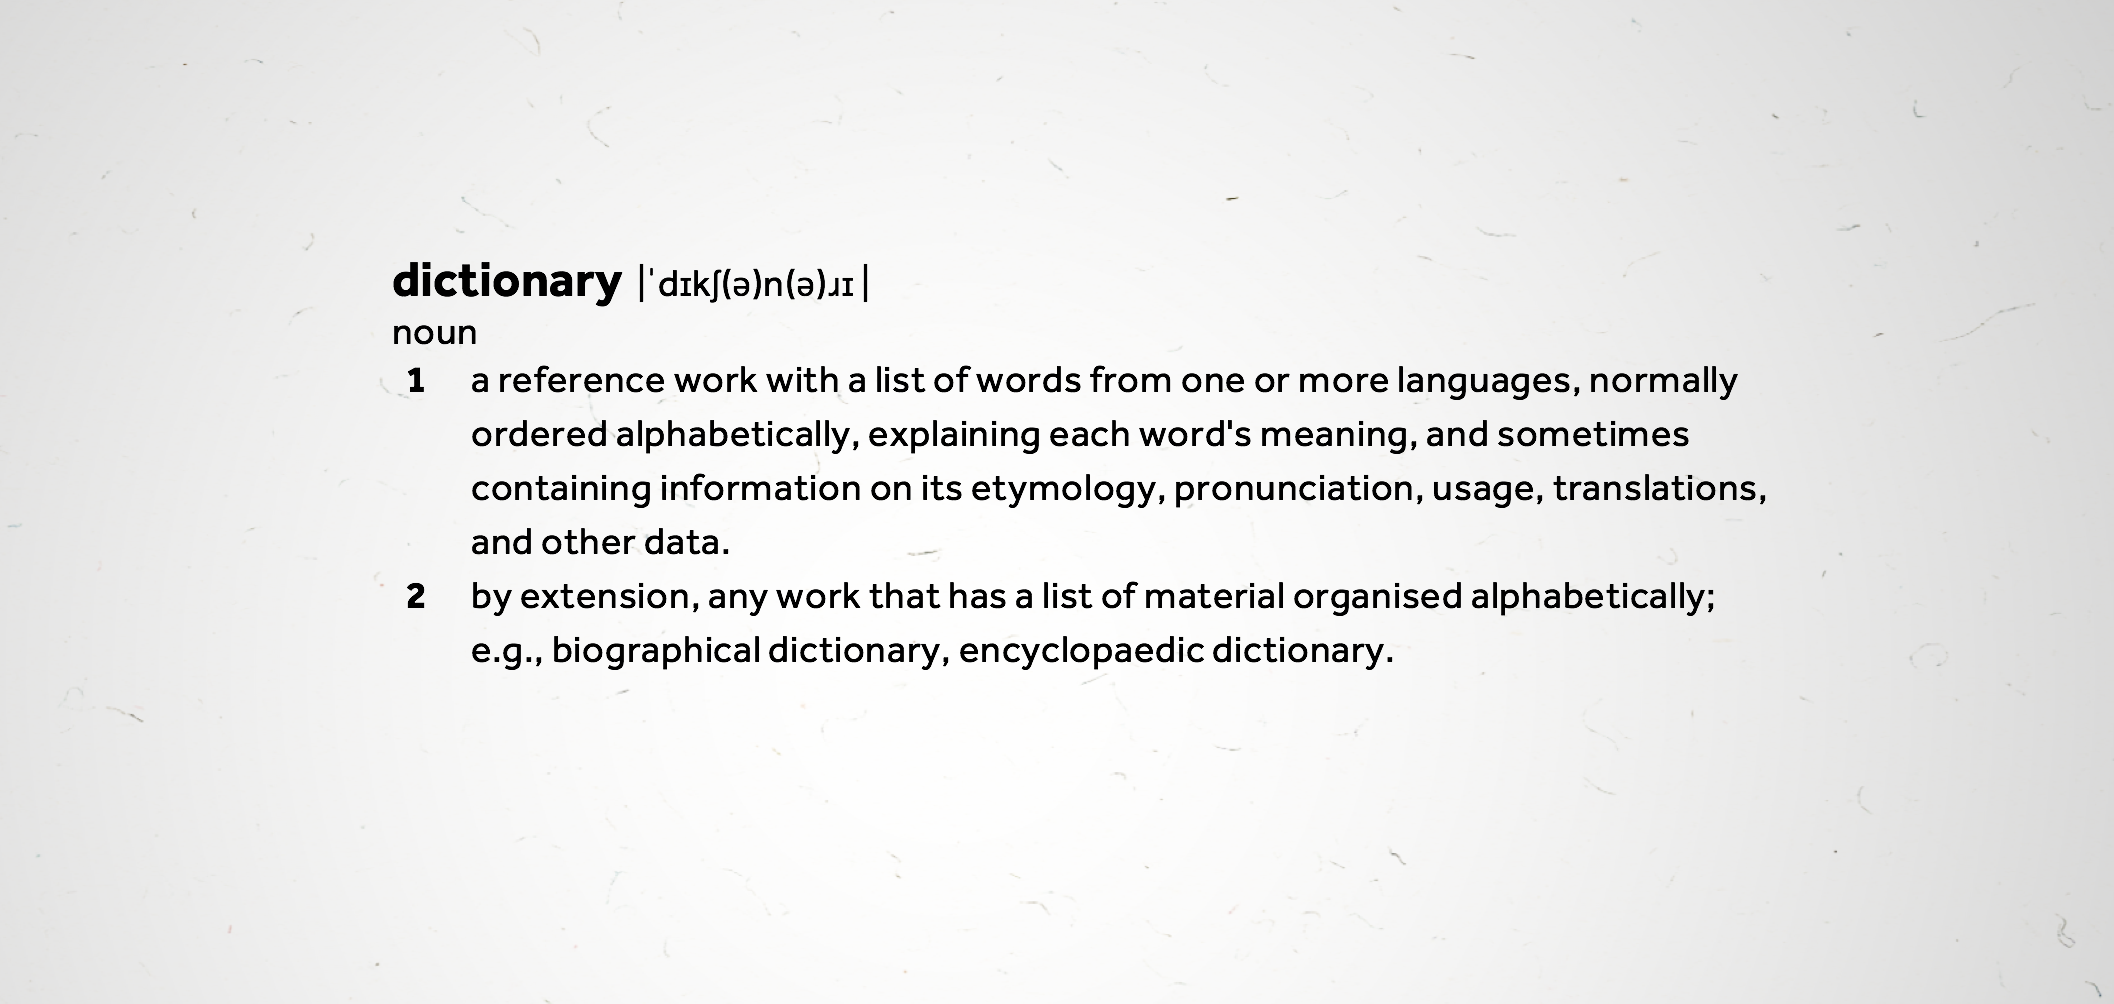 dictionary: areference workwith a list ofwordsfrom 1 or more languages, orderedalphabetically, explaining each word's meaning, & sometimes containing information on its etymology, pronunciation, usage, translations, & other data.